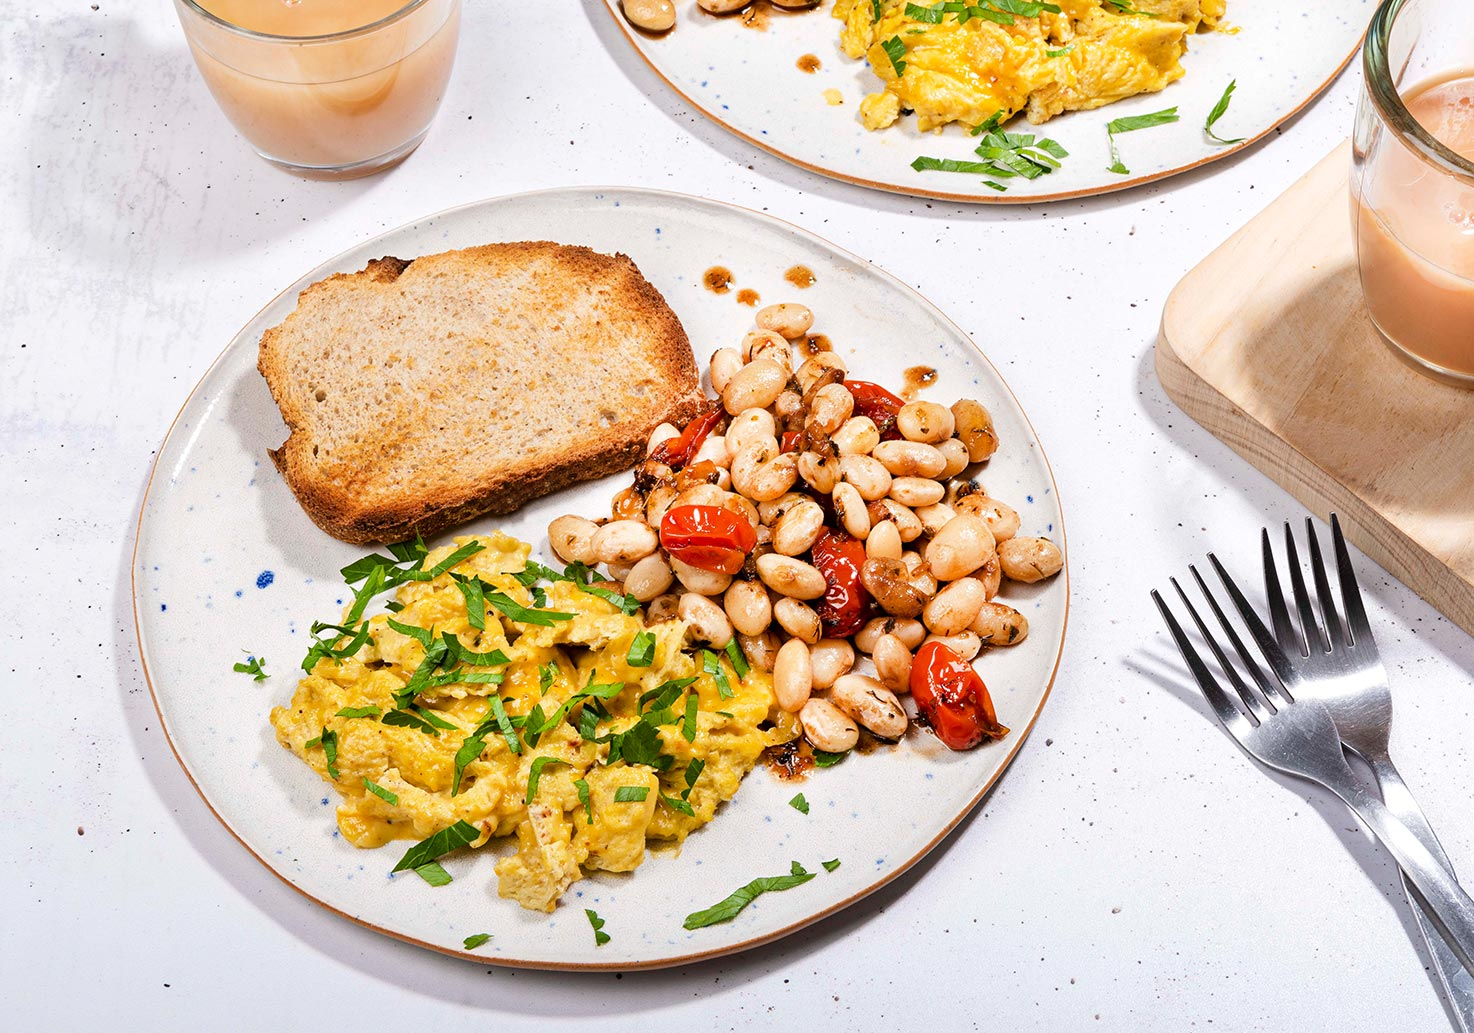 The breakfast is served with whole grain toast on a plate that is on the white table with two forks and a cup of coffee with milk and tea | Hurry The Food Up